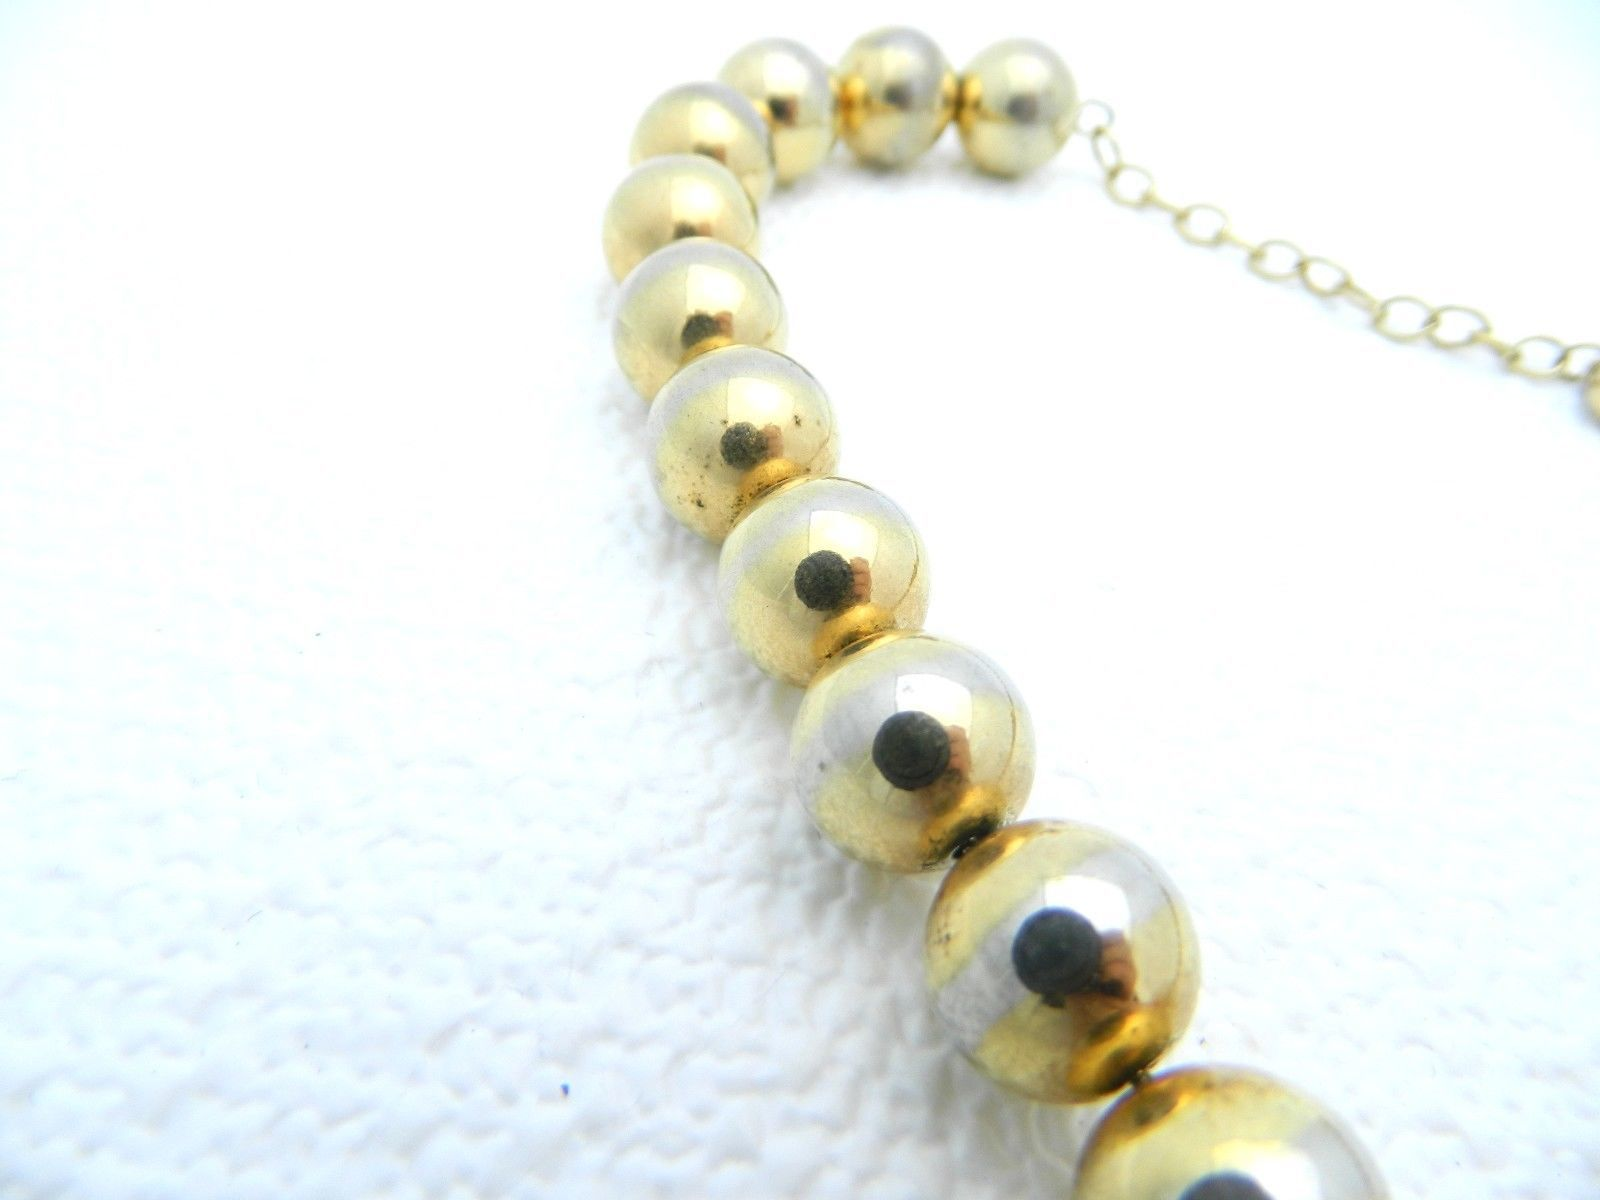 VTG Gold Toned SARAH COVentry Signed Metal Bead Beaded Choker Necklace